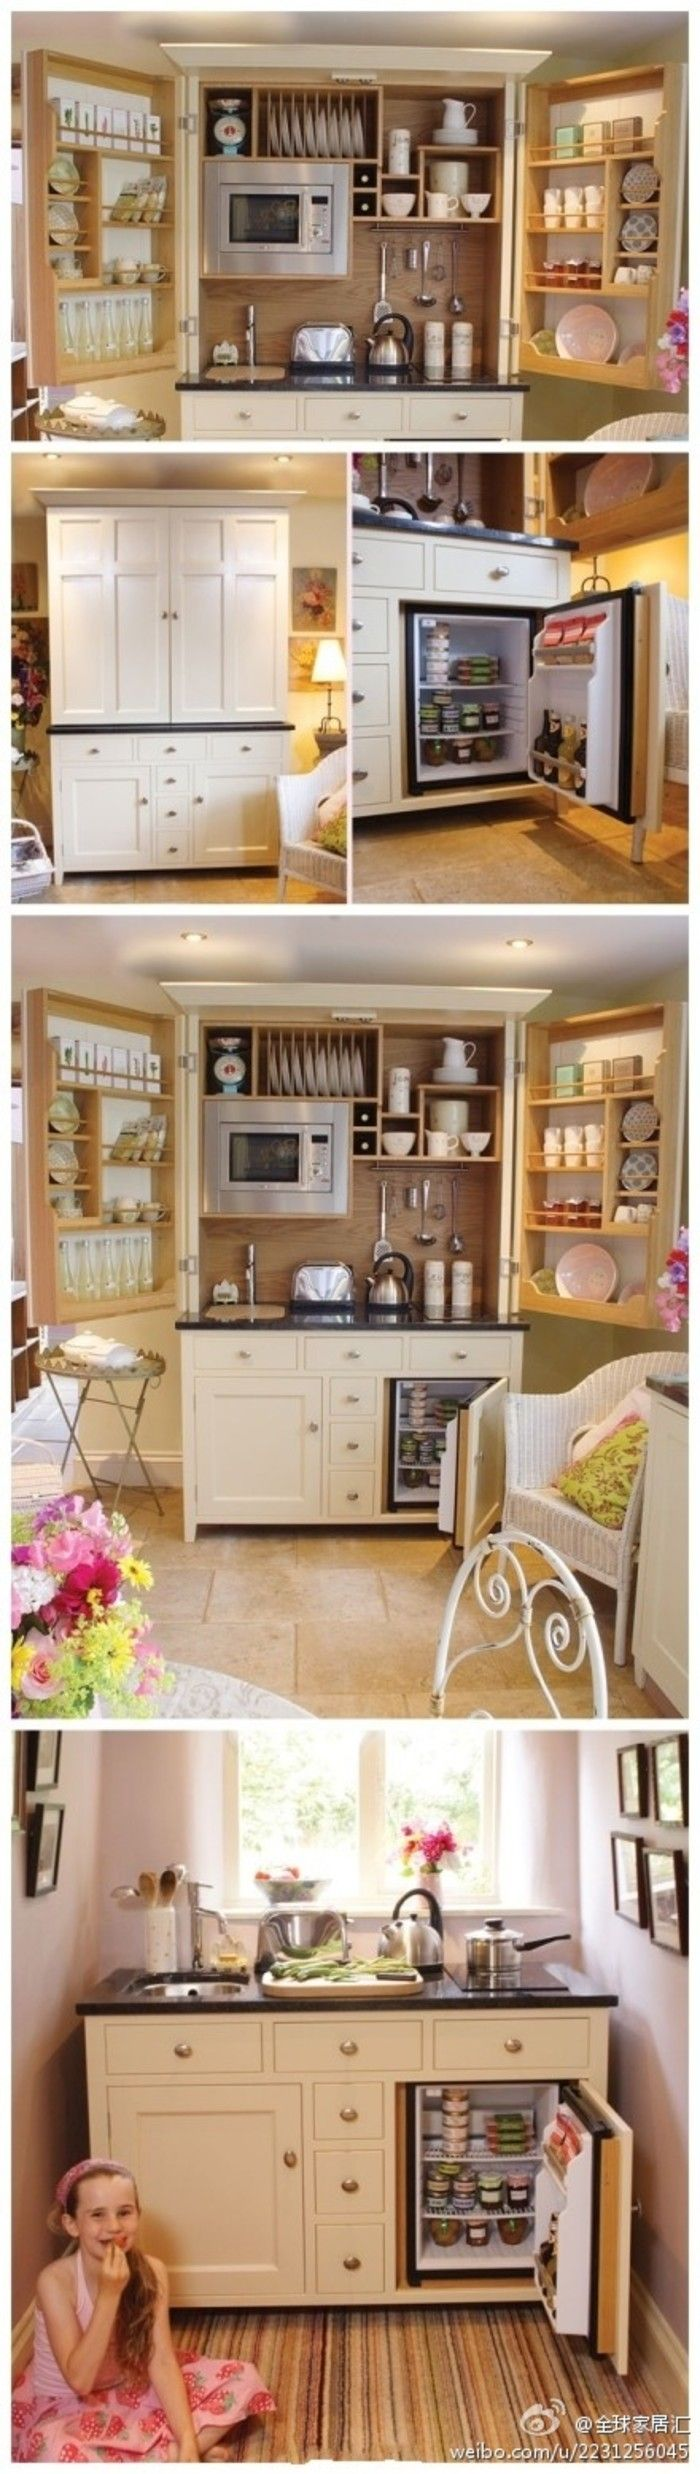 best tiny kitchens images on pinterest kitchens small houses